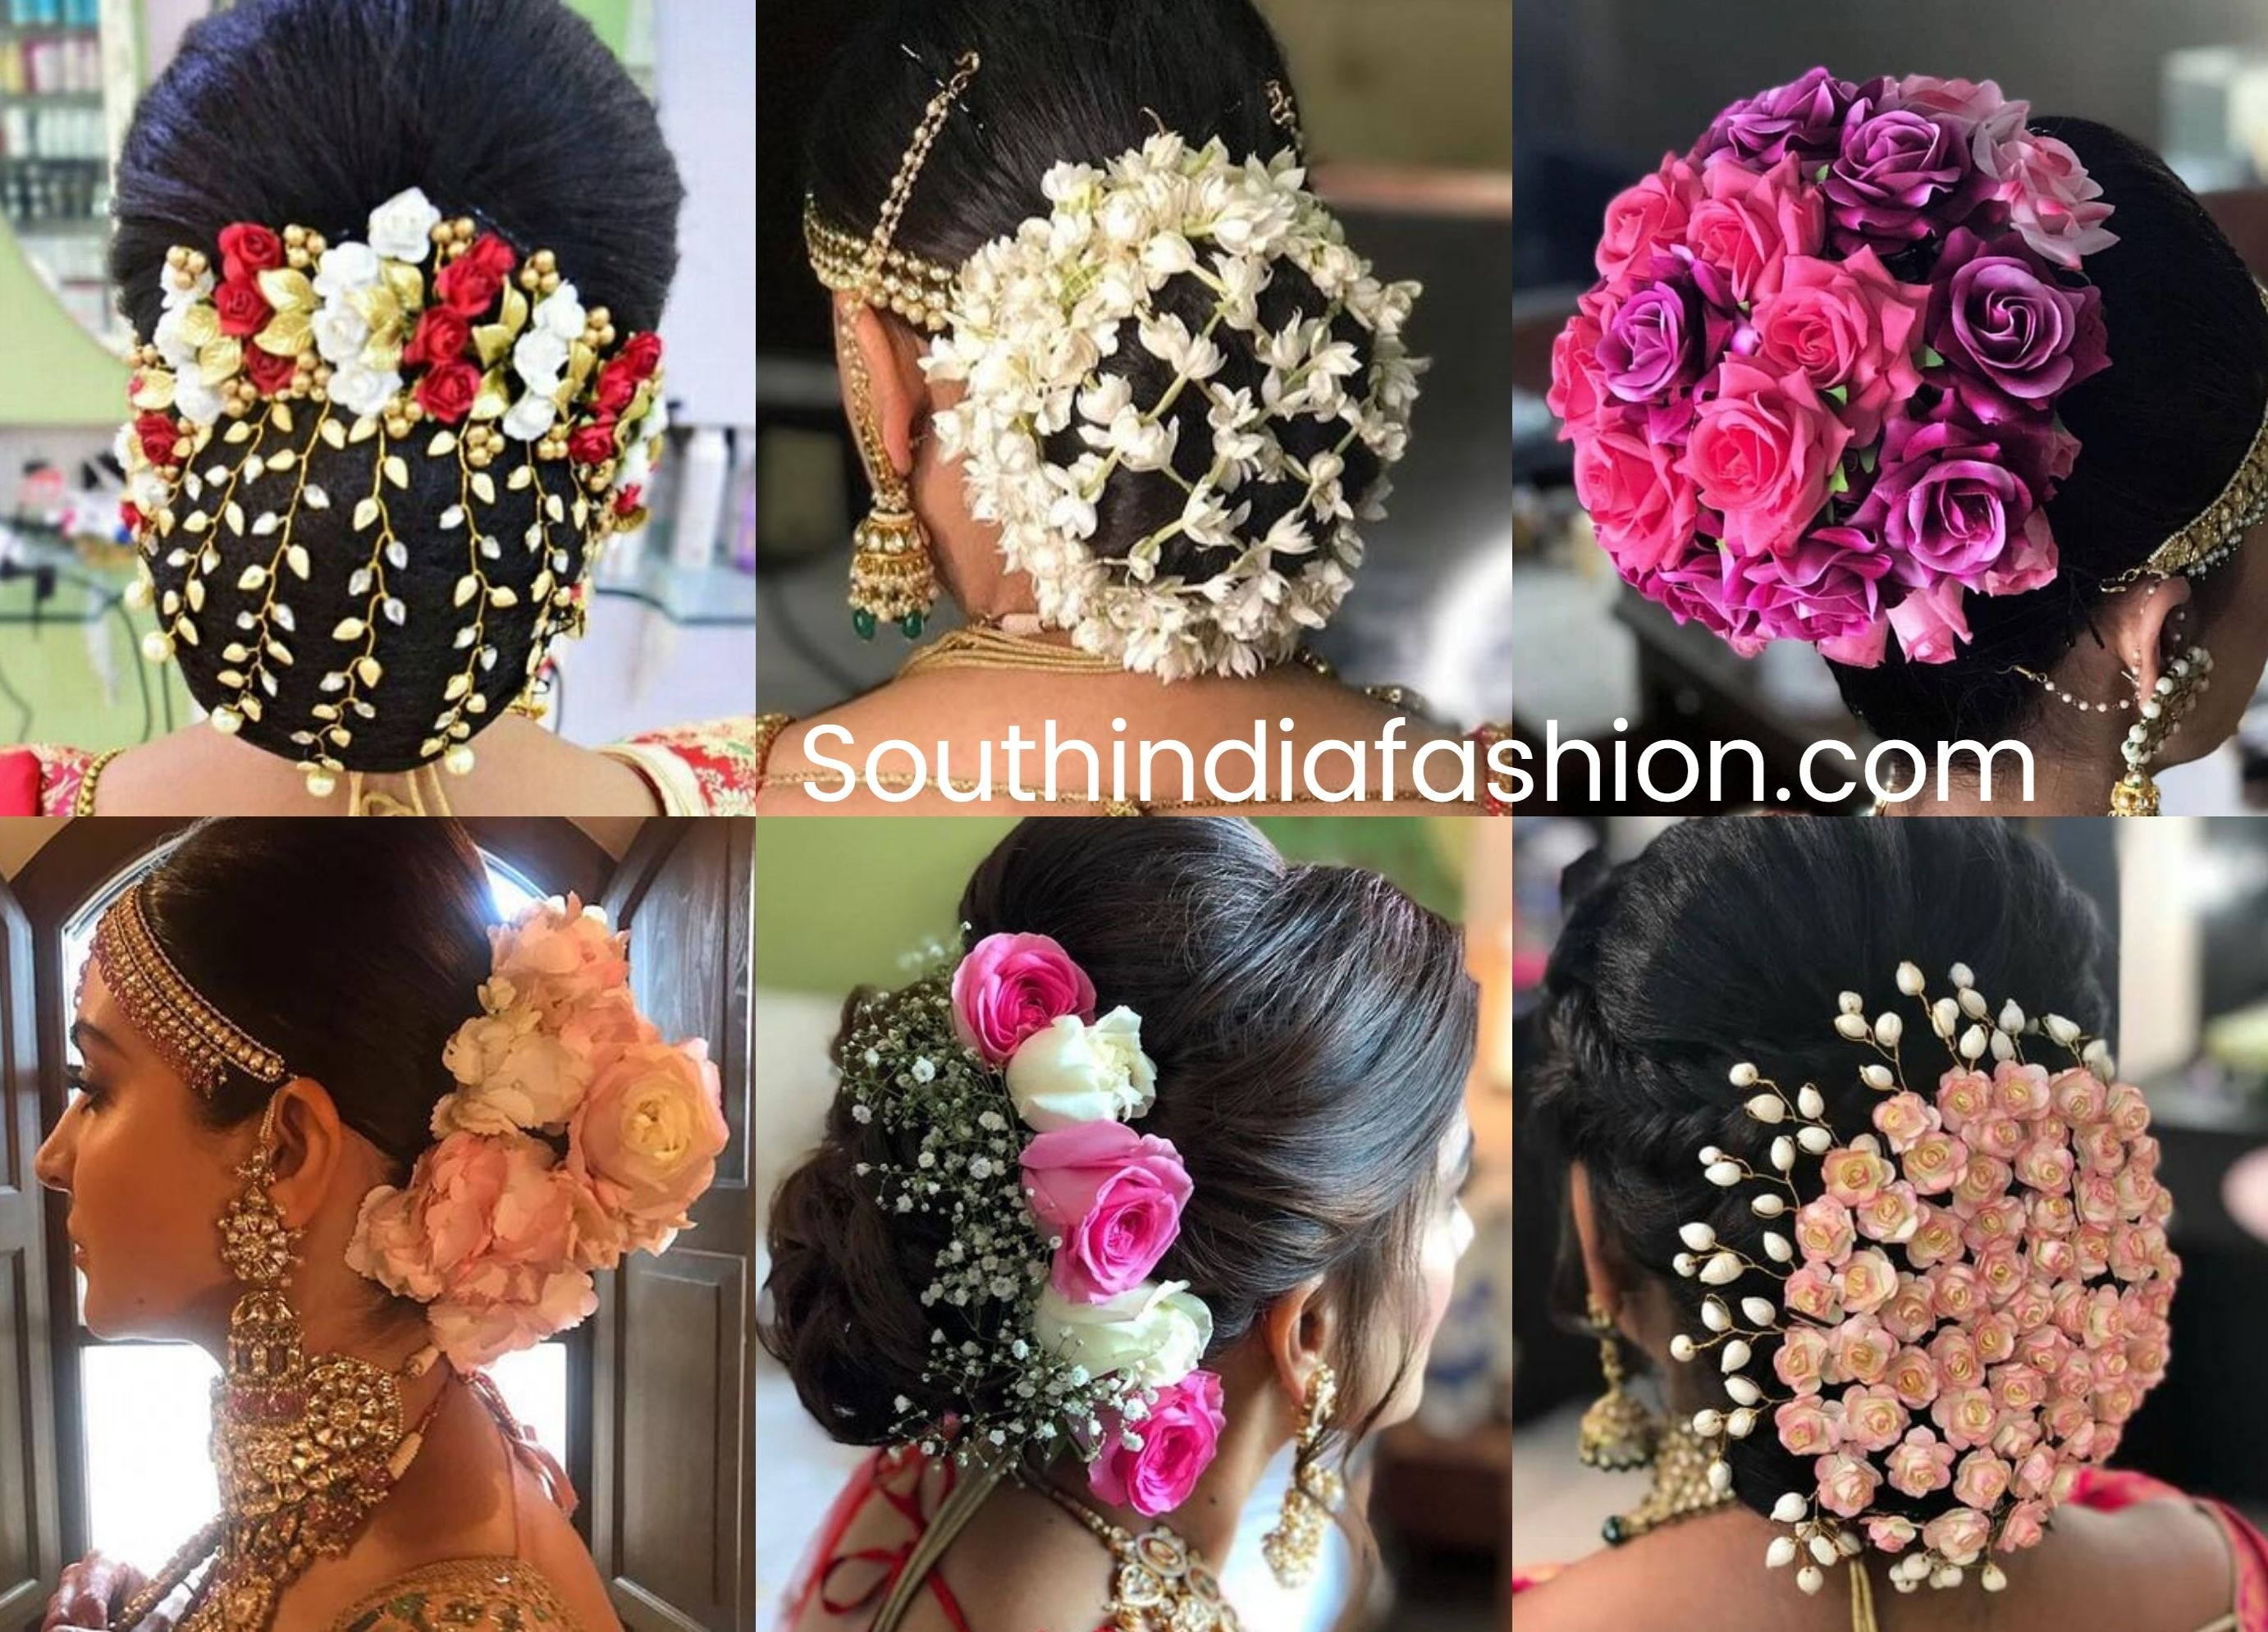 Indian Wedding Bun Hairstyle With Flowers And Gajra! | •hair within Hairstyles For Indian Wedding With Flowers